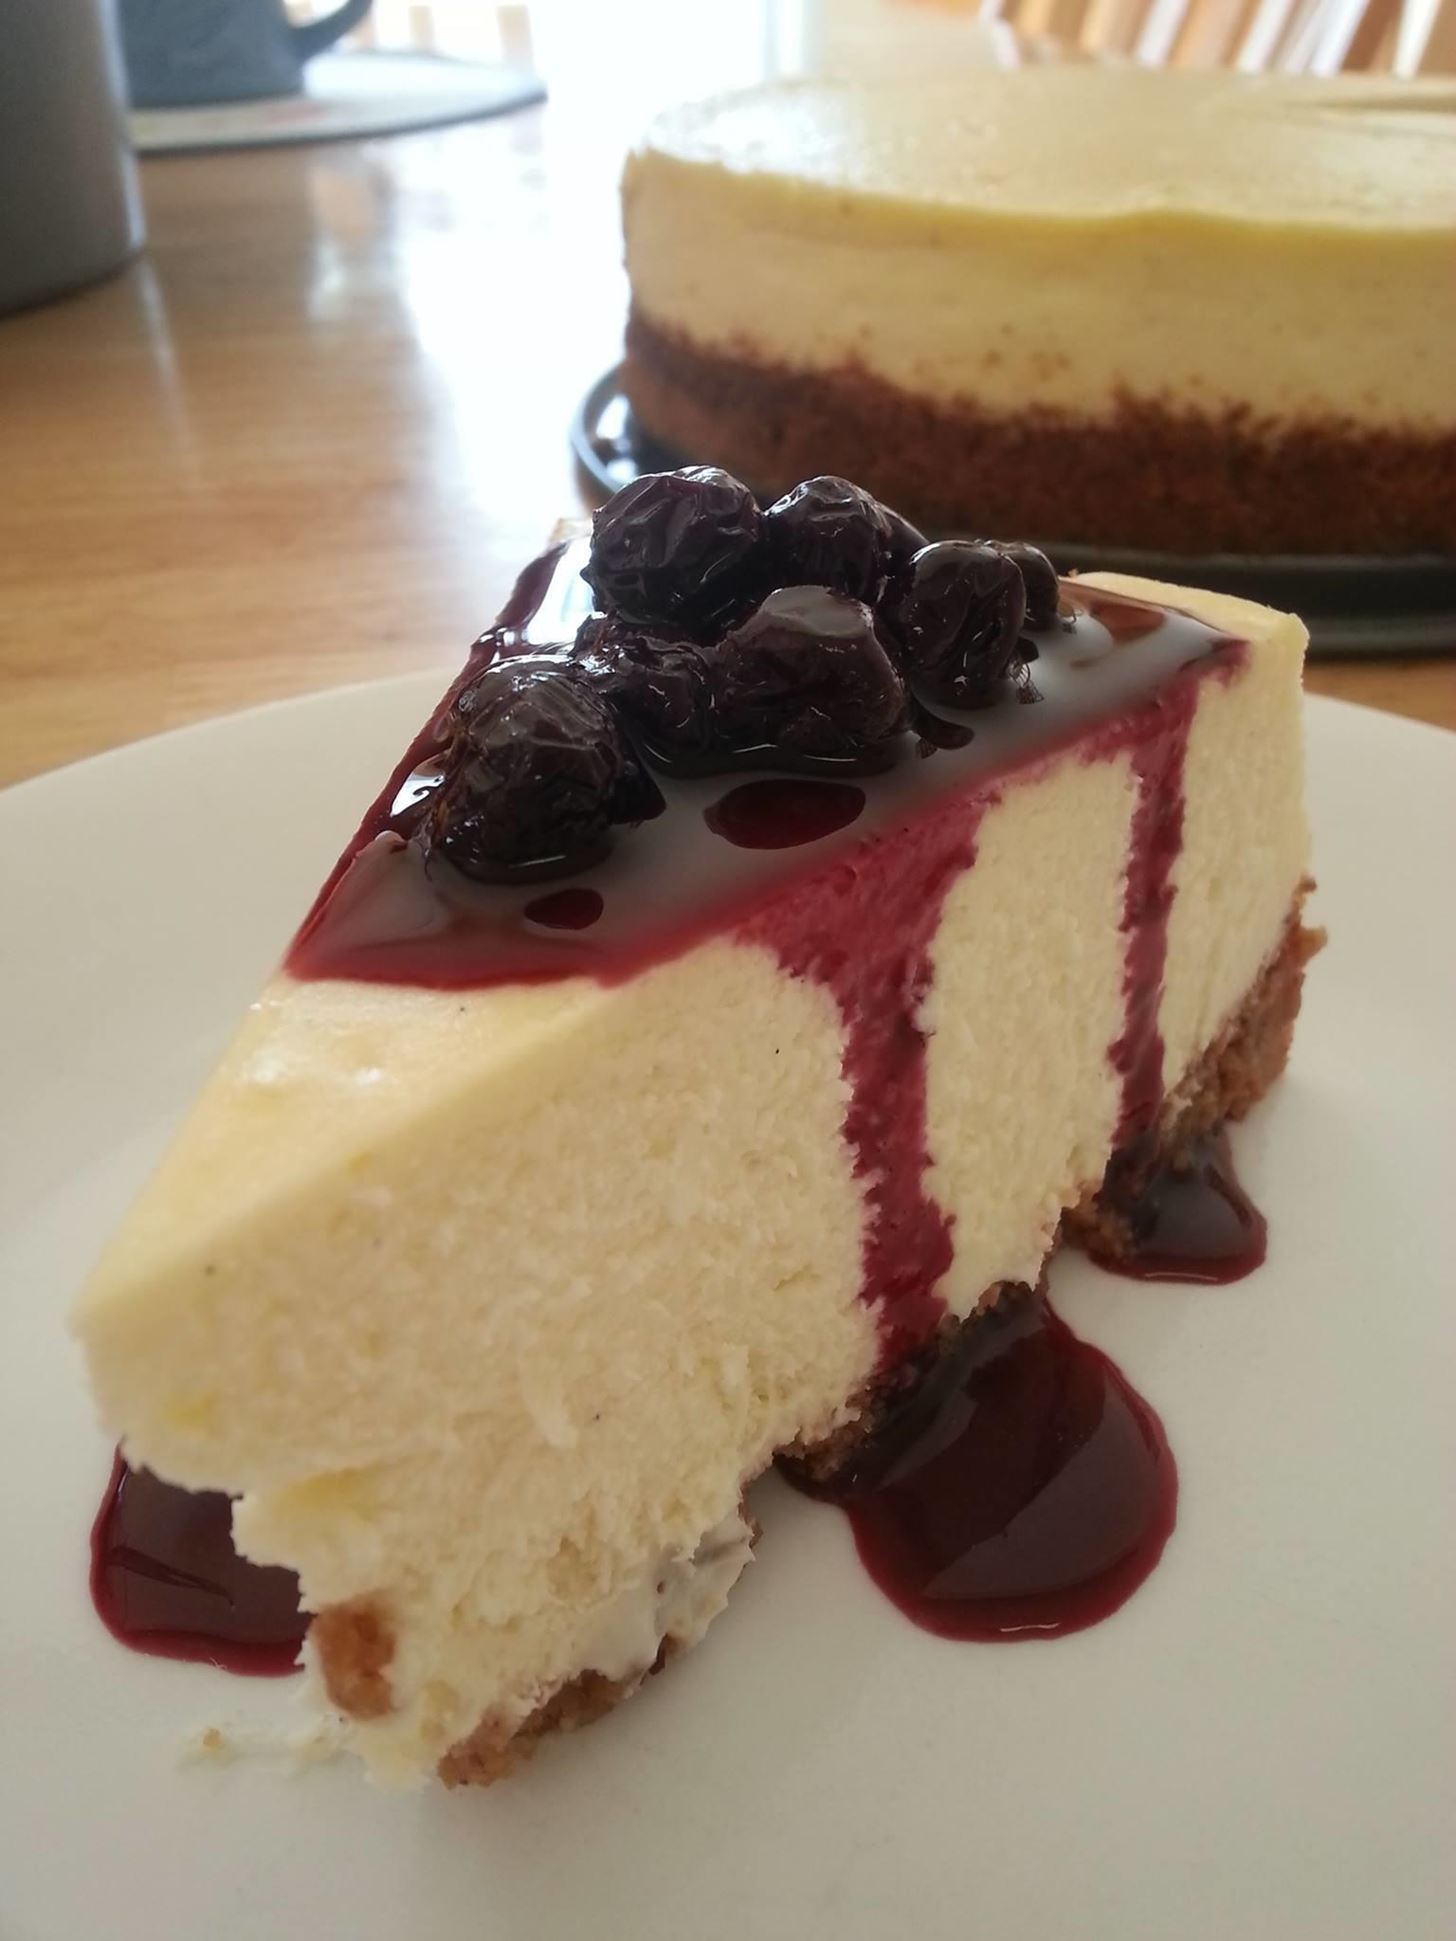 How to Make Blueberry Cheesecake